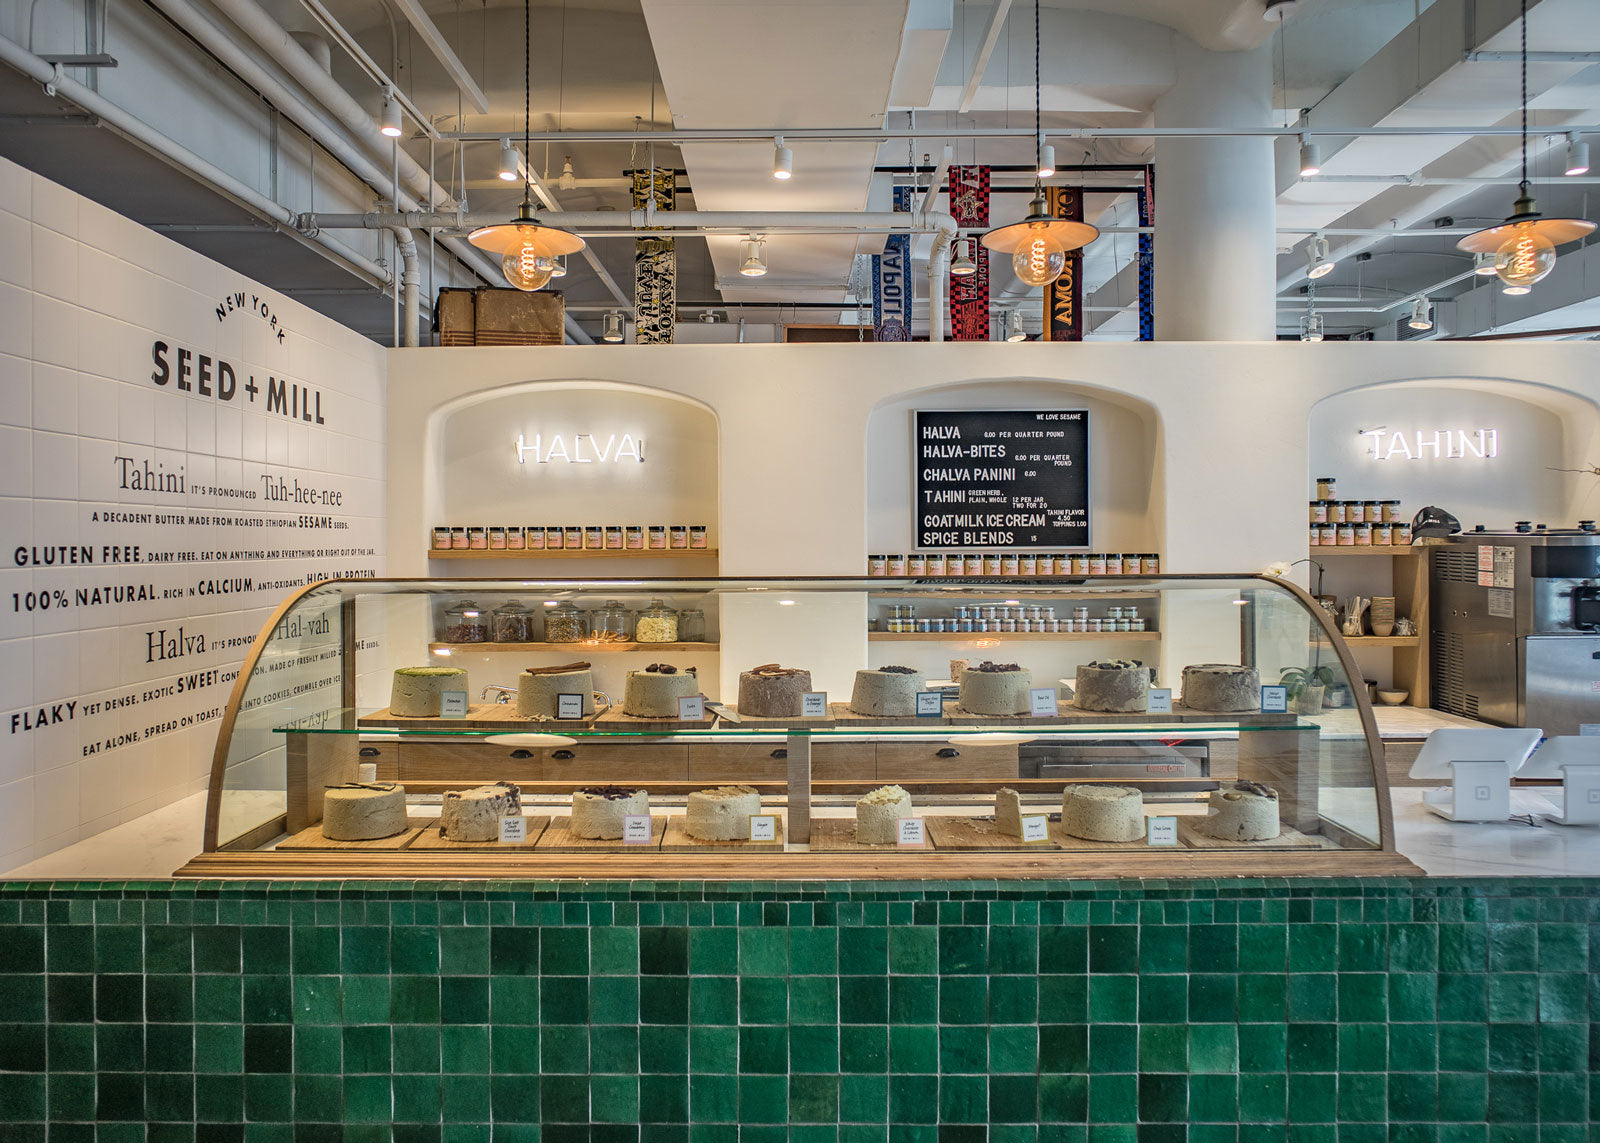 Seed + Mill's New York storefront.~WHOLE